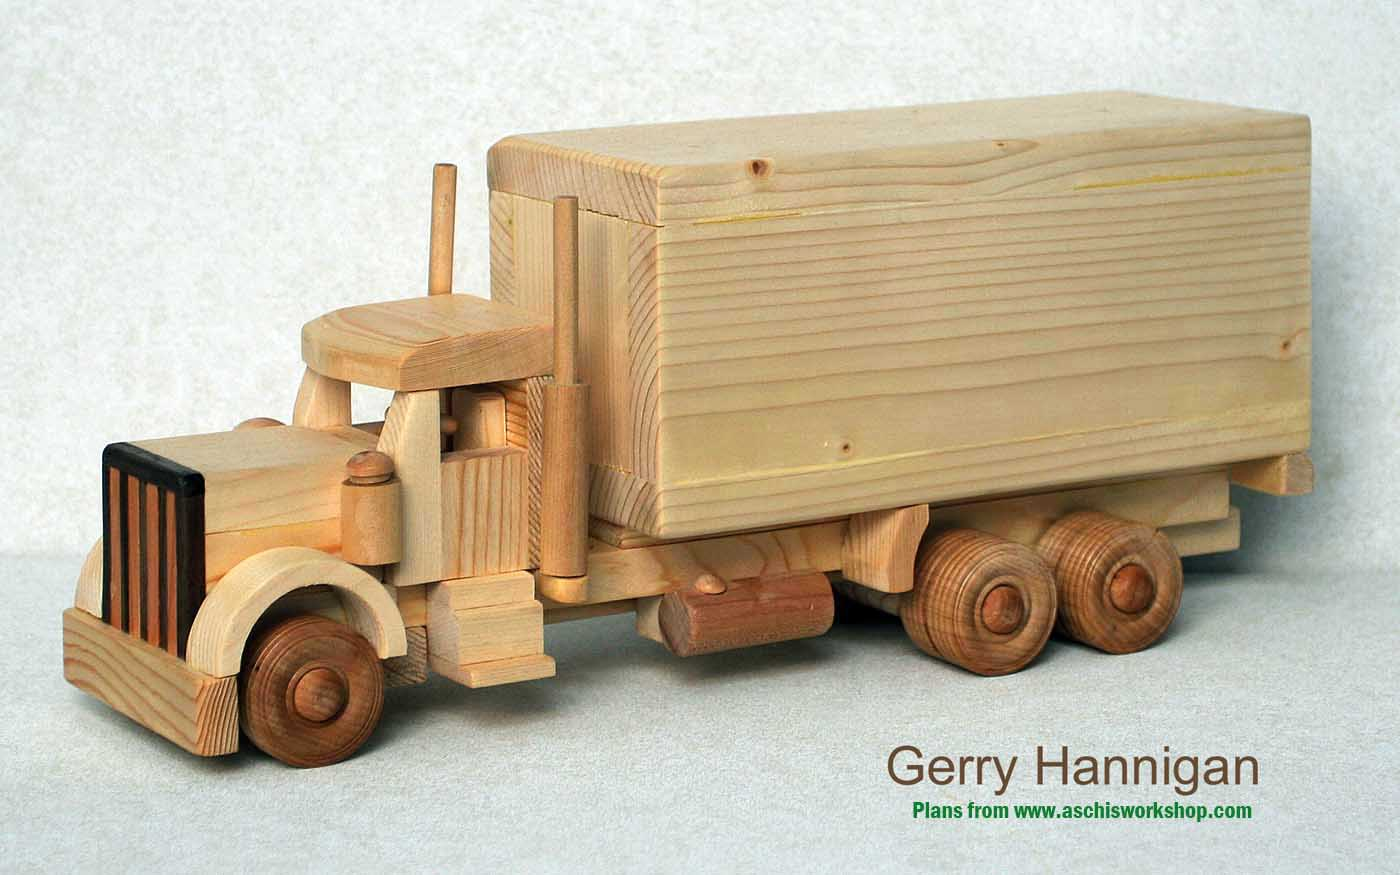 toy maker gerry hannigan